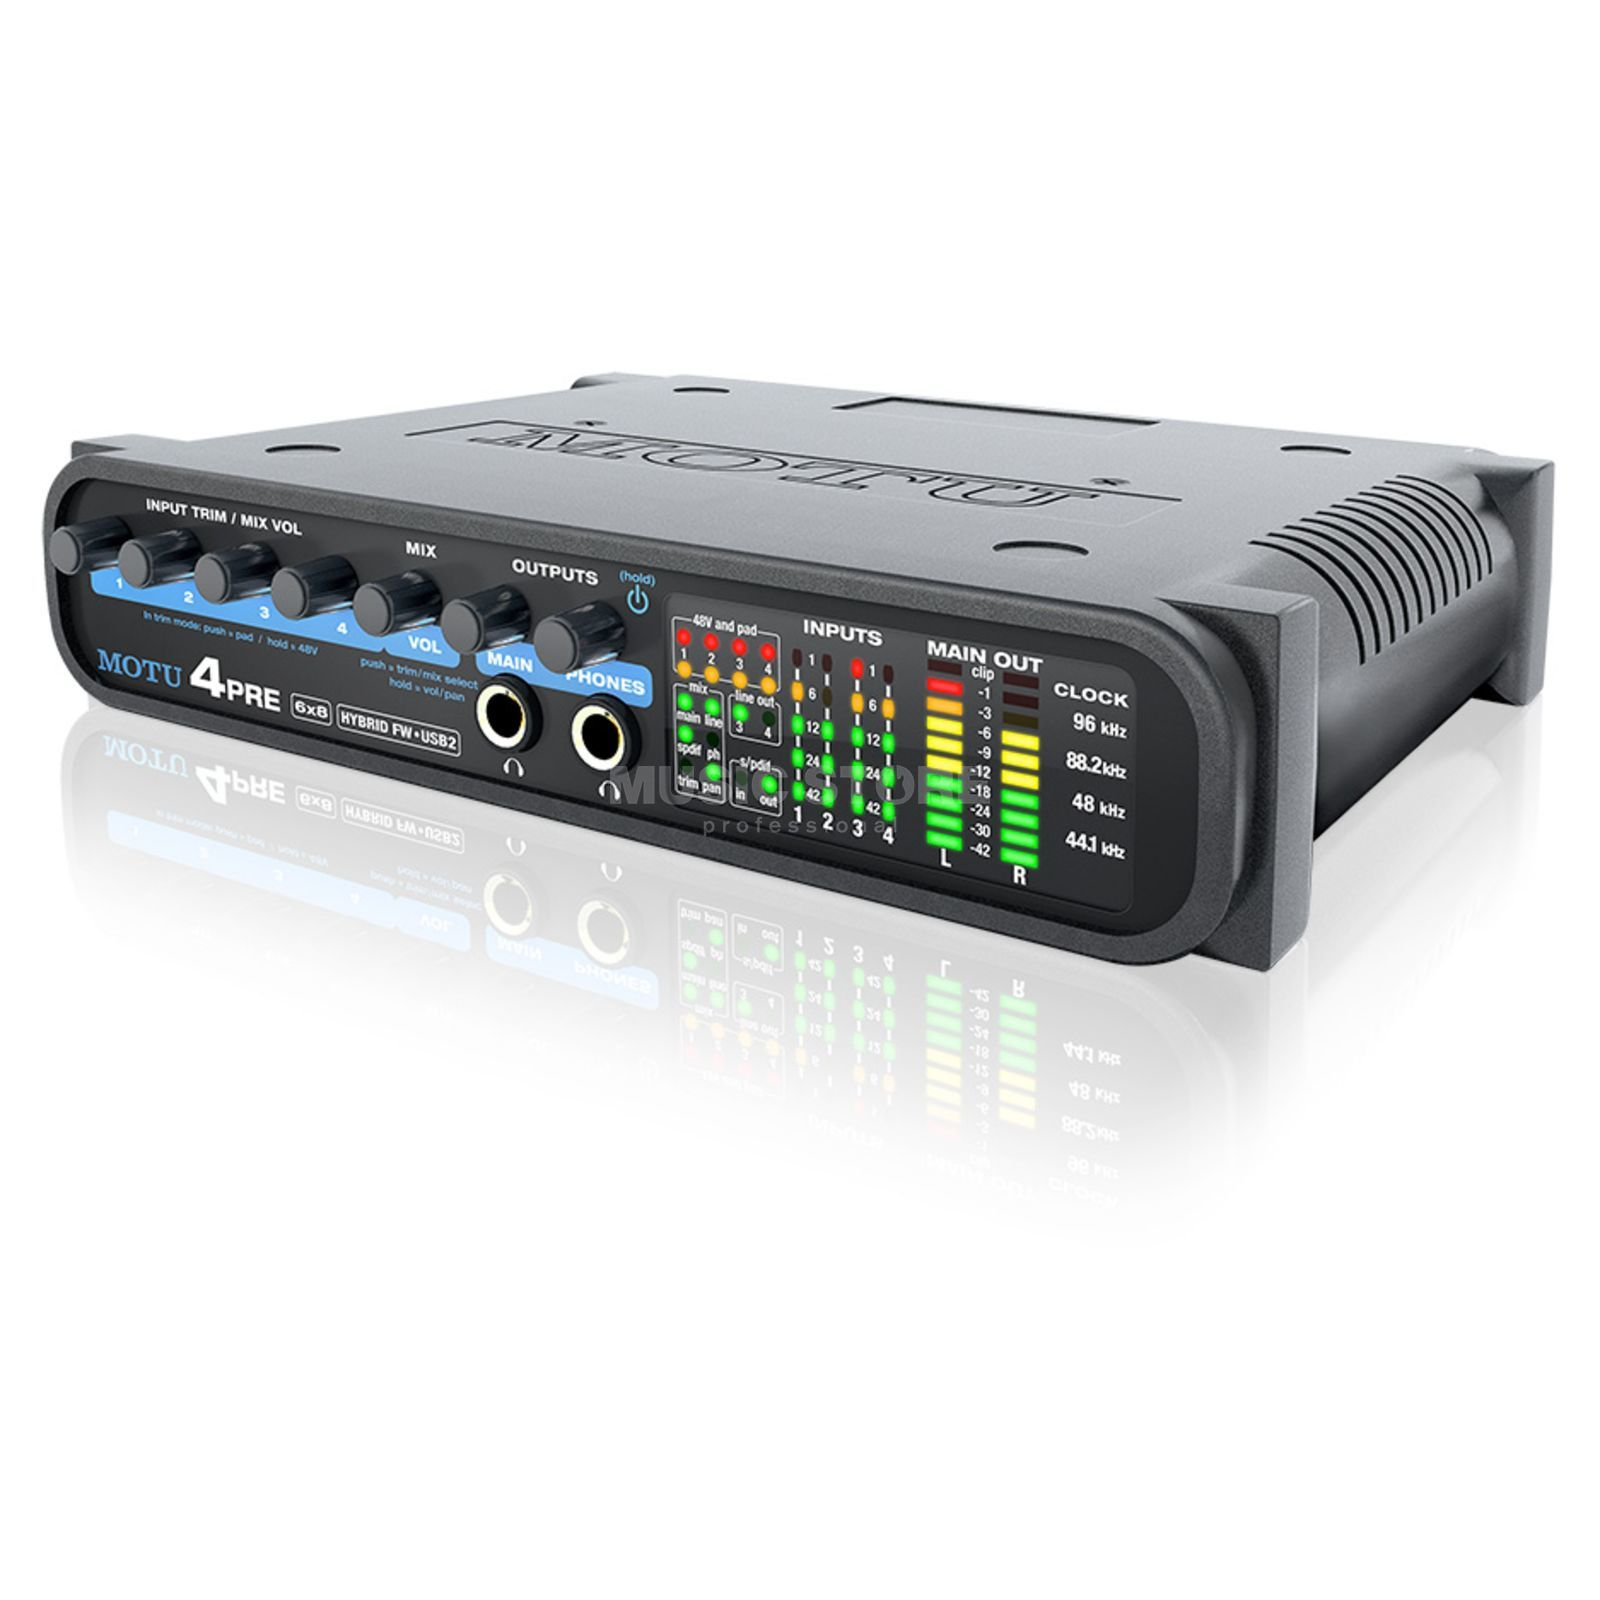 MOTU 4pre 6x8 USB 2.0 & FireWire Audio Interface Produktbillede